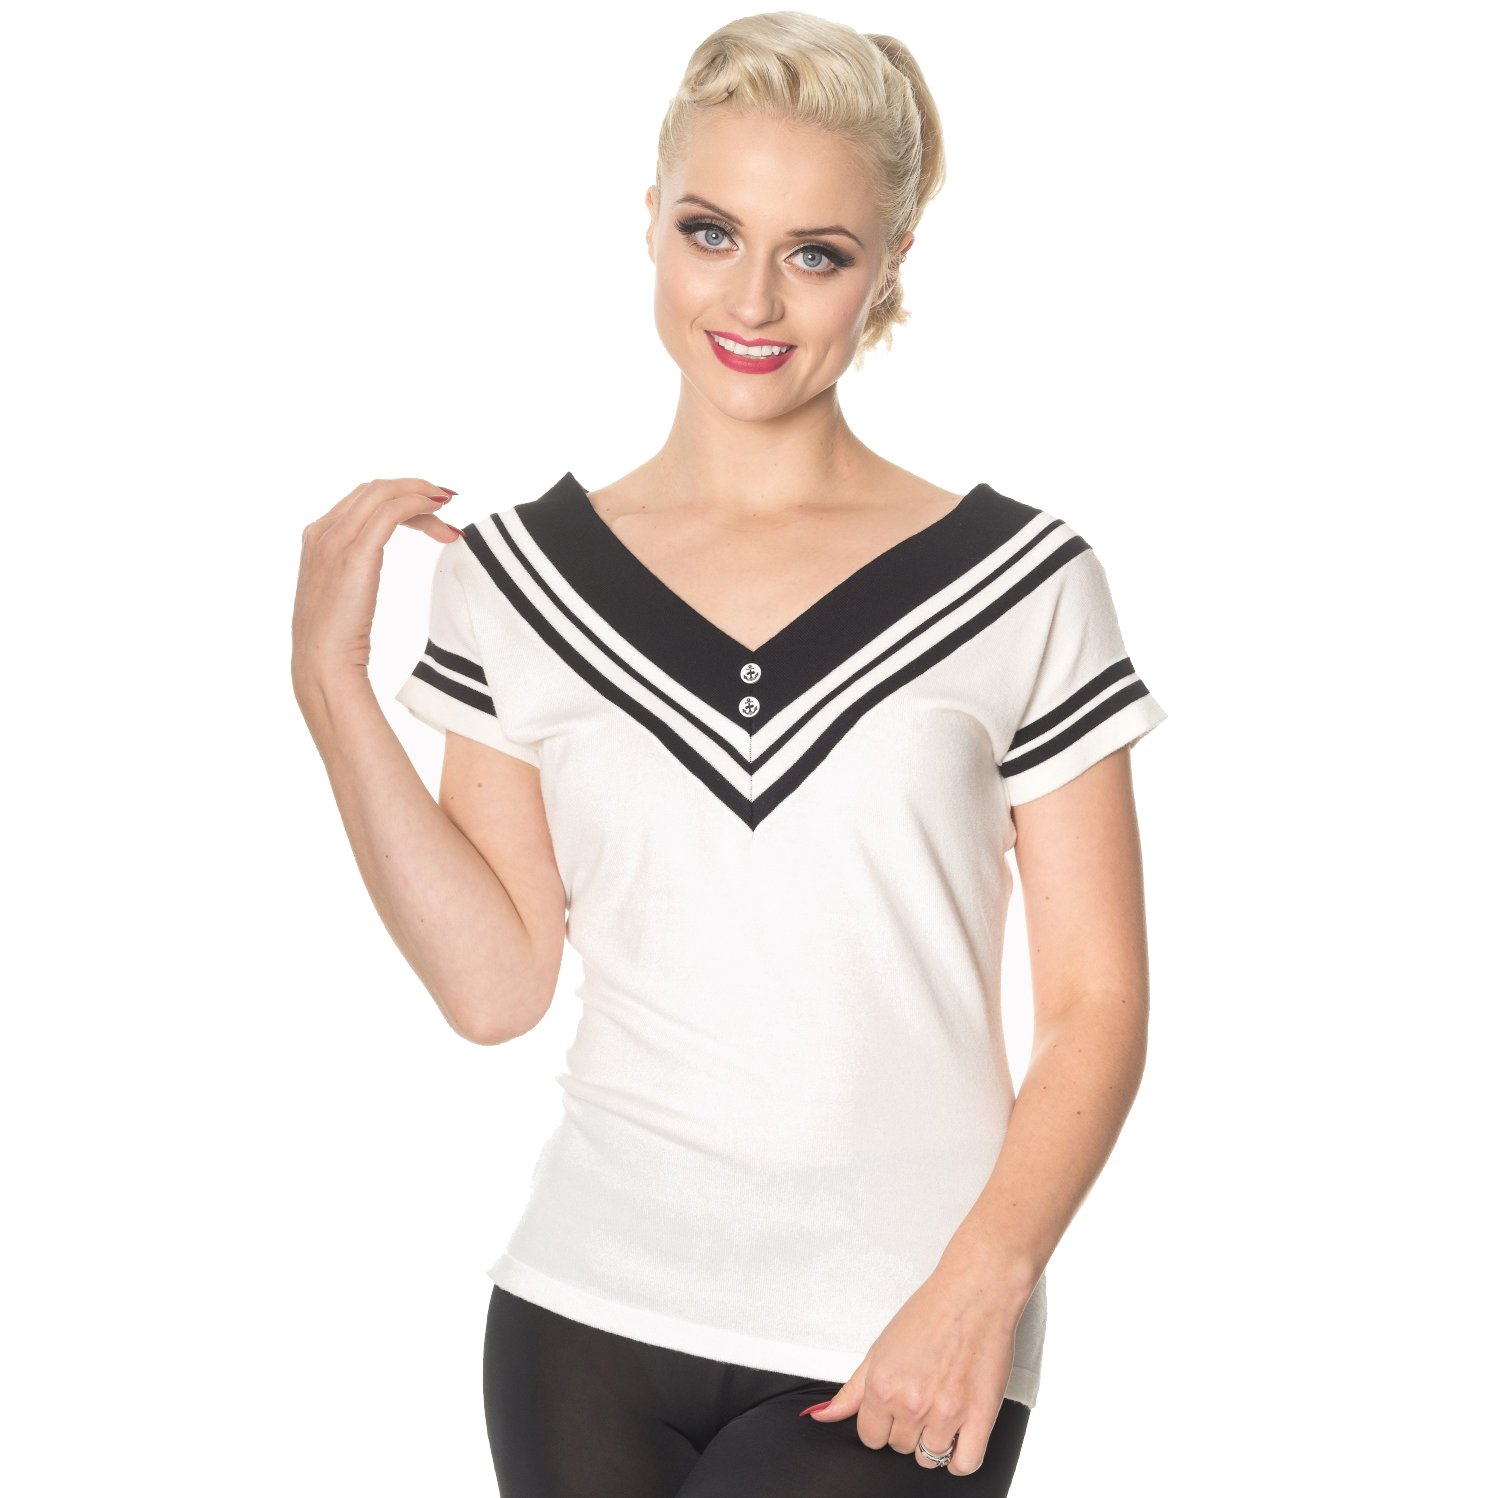 1940s Blouses and Tops Dancing Days Cedar Nautical Sailor Short Sleeve 1950s Vintage Retro Sweater Top £26.99 AT vintagedancer.com